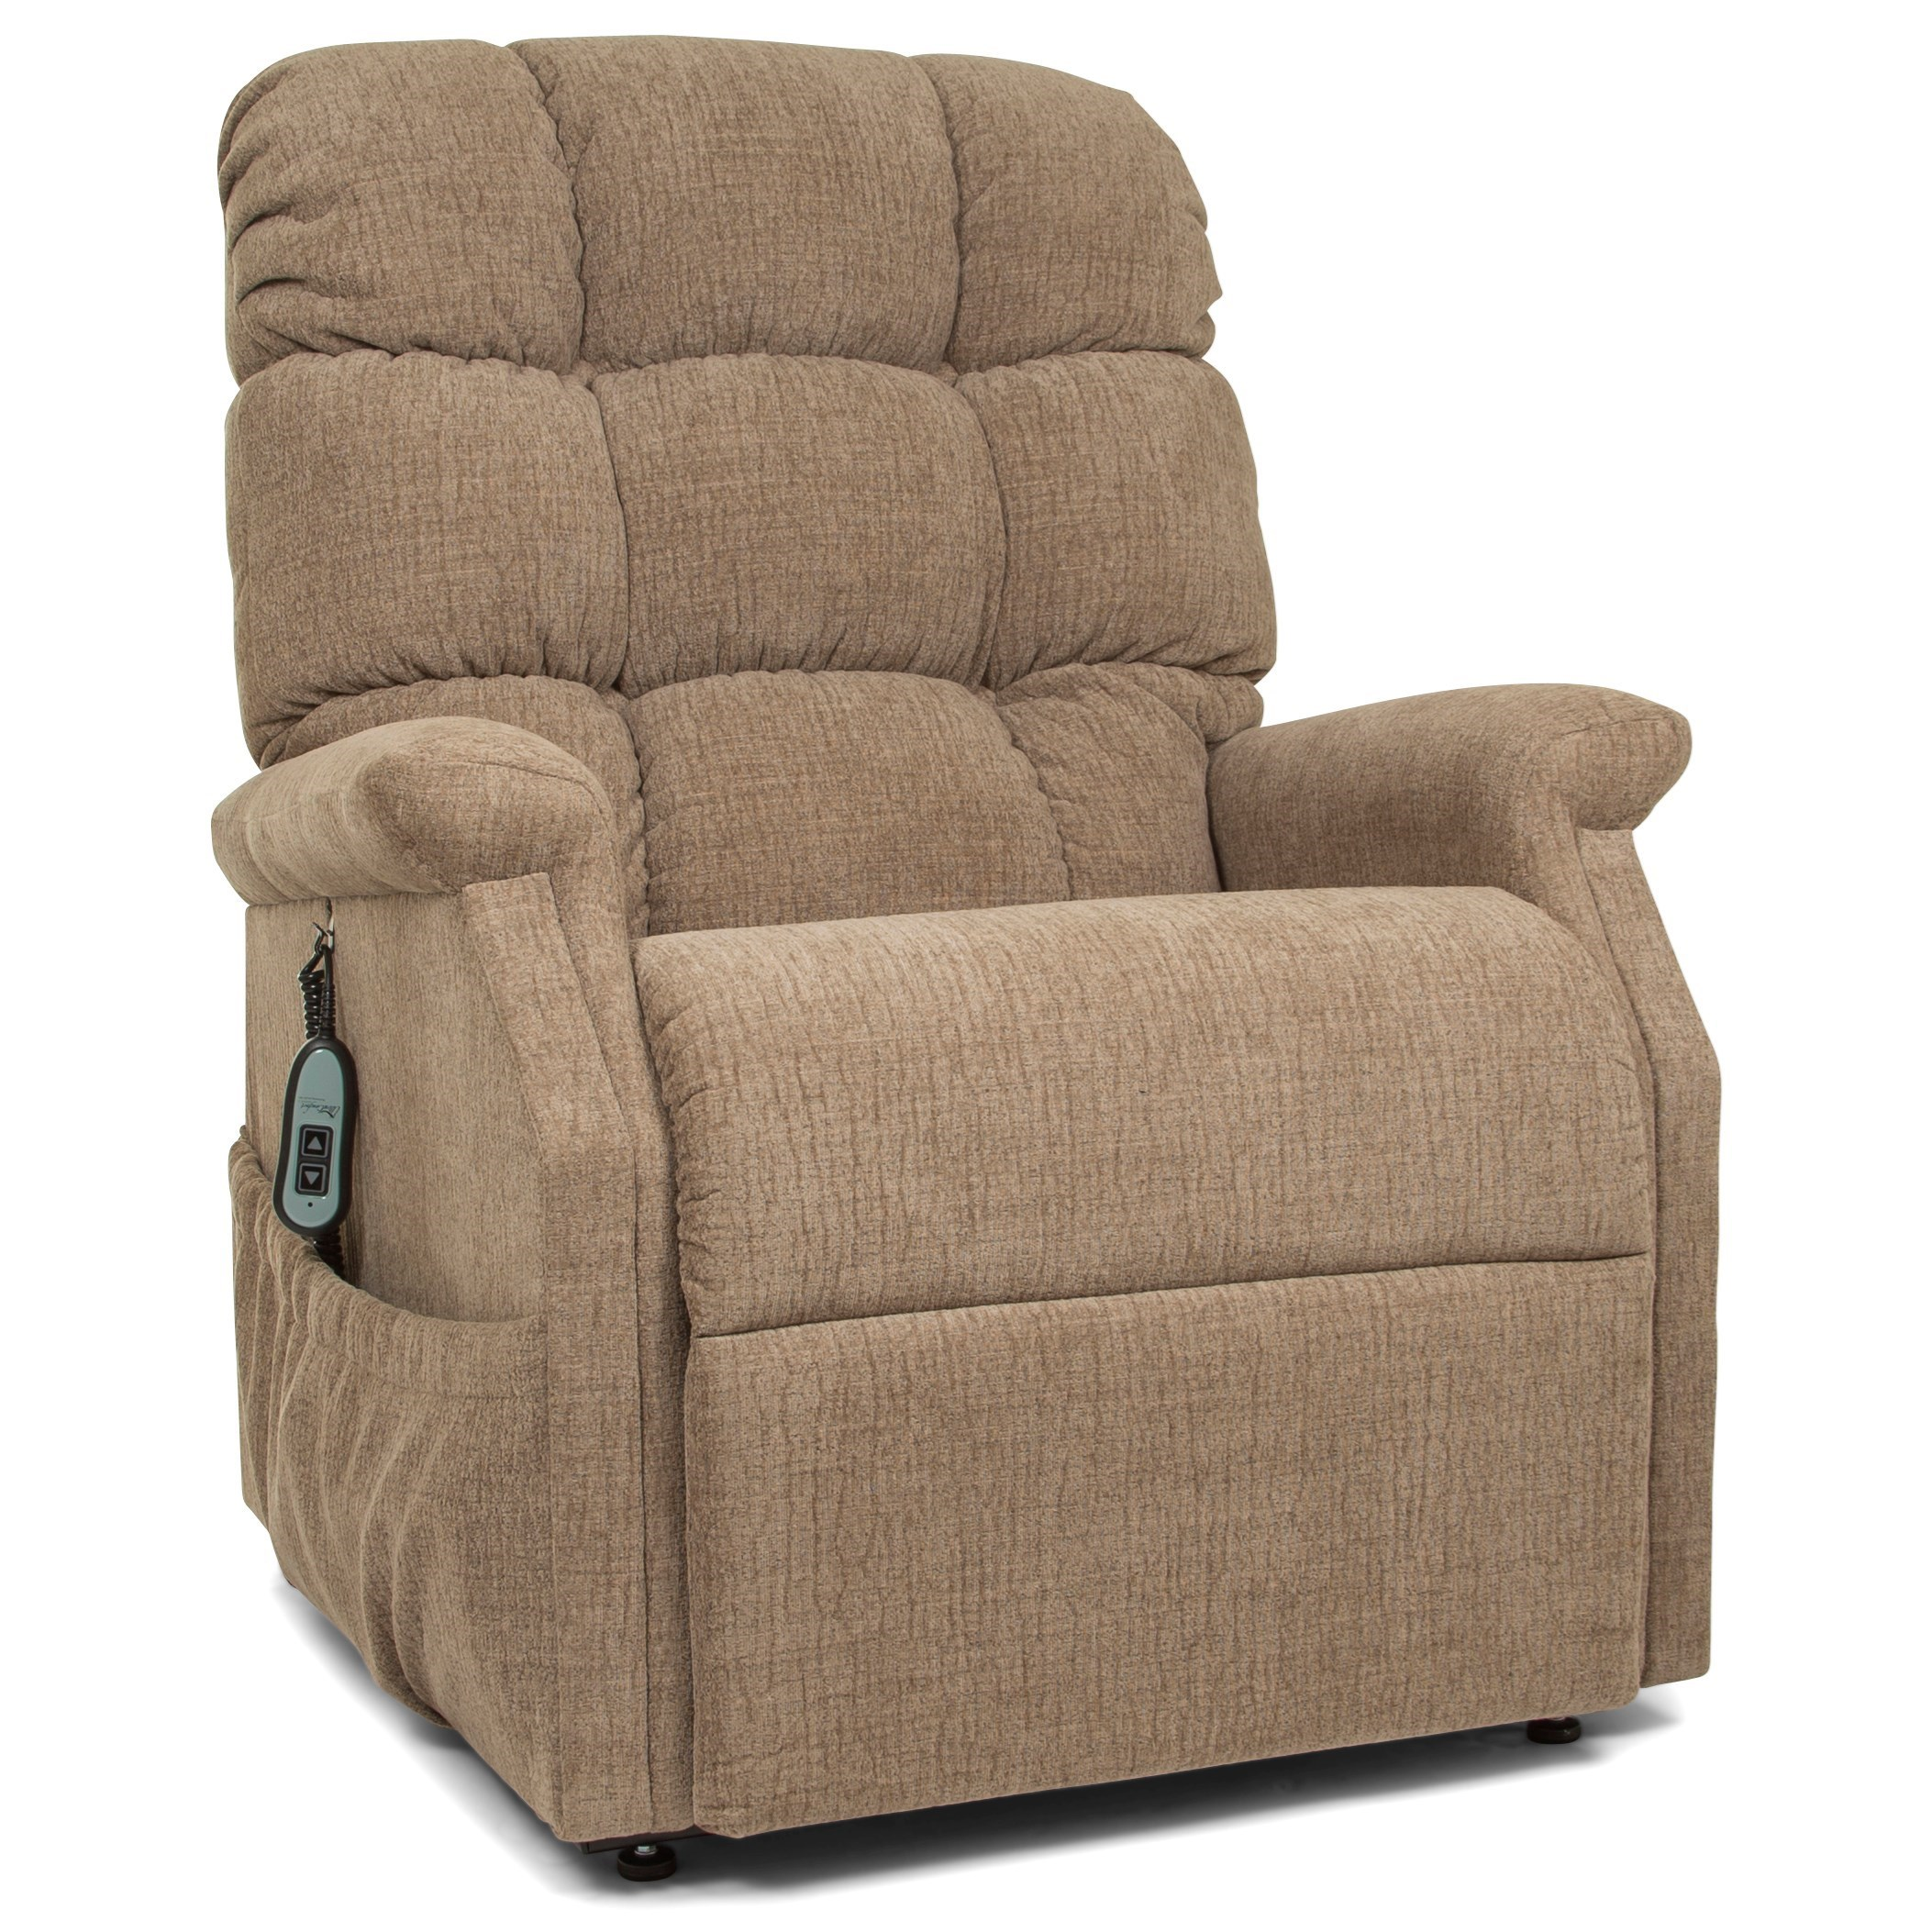 Tranquility Lift Recliner by UltraComfort at Johnny Janosik